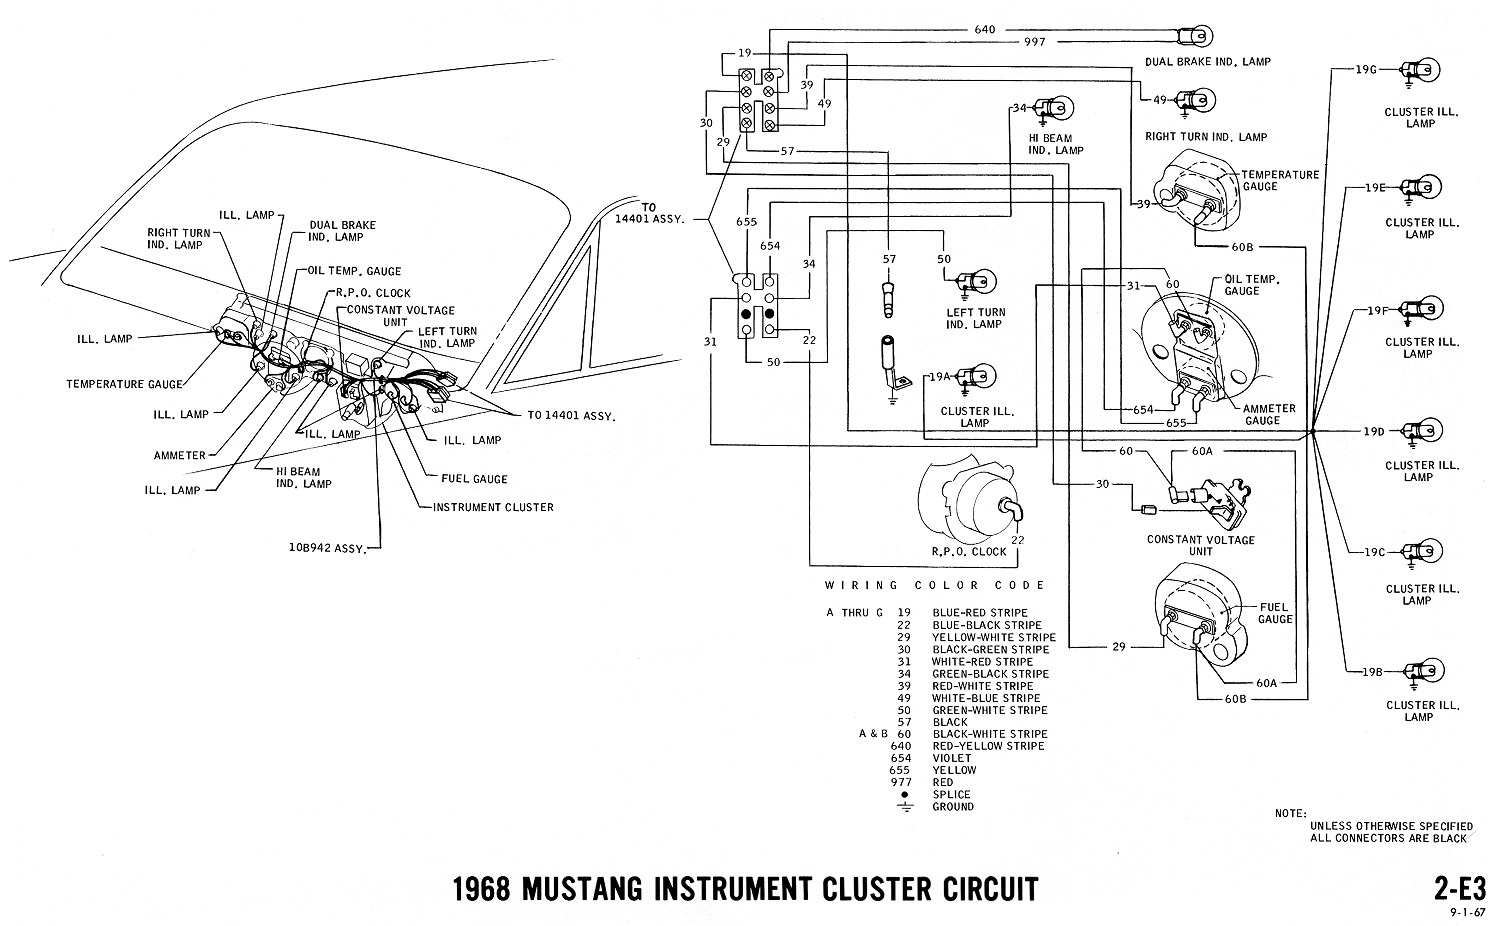 1968 mustang wiring diagram instruments 1968 mustang wiring diagrams and vacuum schematics average joe 1967 mustang instrument cluster wiring diagram at sewacar.co